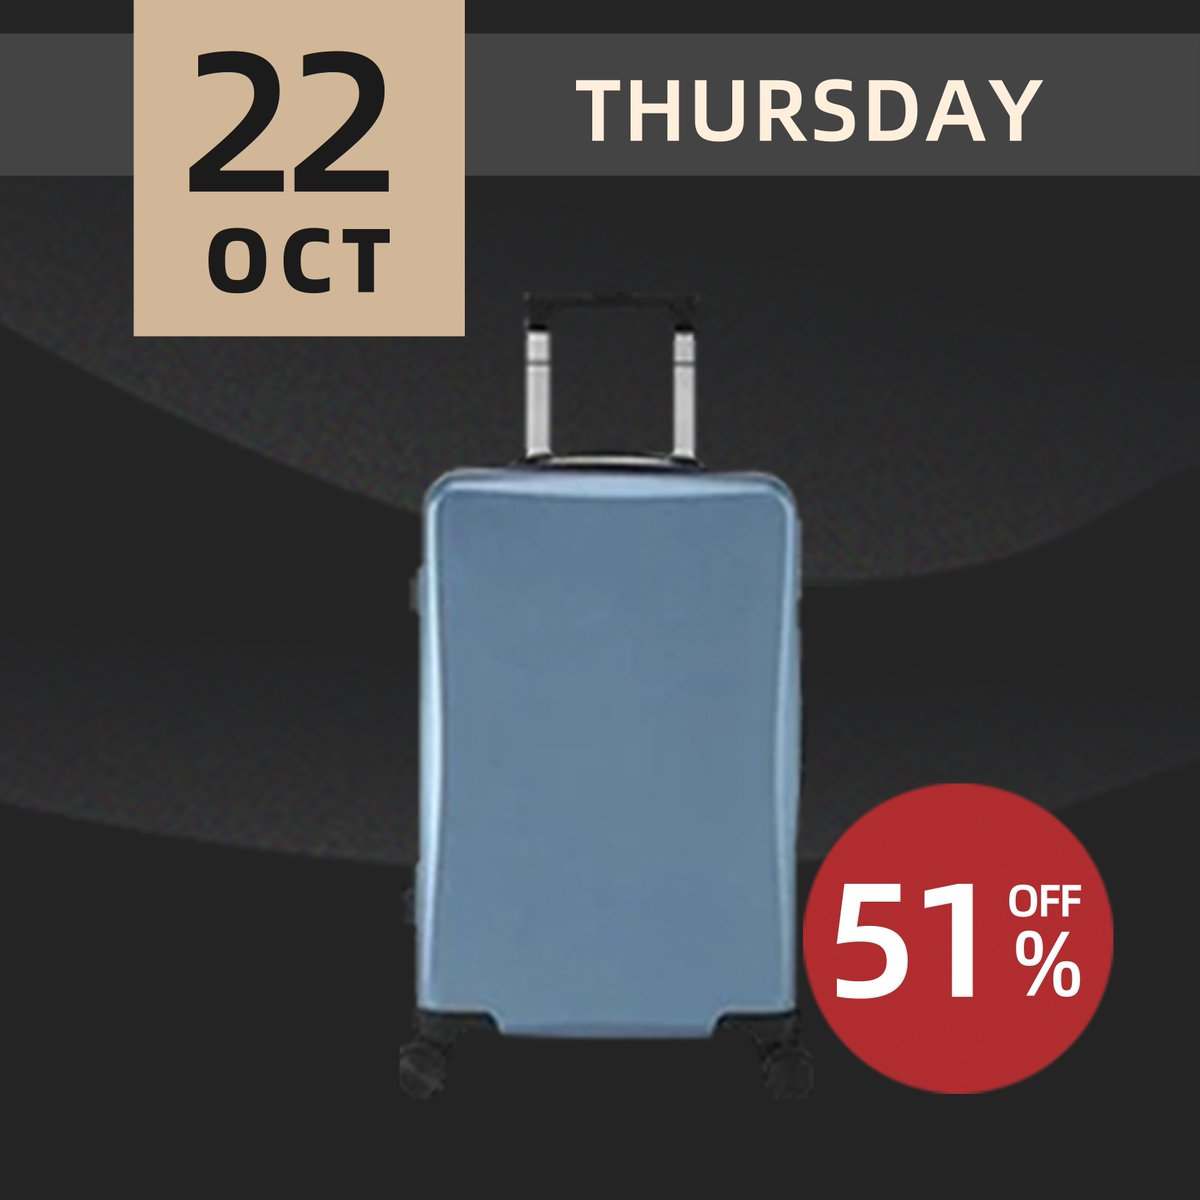 ⚡FLASH SALE⚡ Light and wear-resistant, suitable for short trip. Shop before it is gone at https://t.co/PuLLtLDesW .  #lifease #lifeaseproducts #privatelabel #luggage #suitcase #travelluggage #traveling #onboardsuitcase #onboard #beautifuldestinations #darlingescapes https://t.co/tTgCvvkRv5